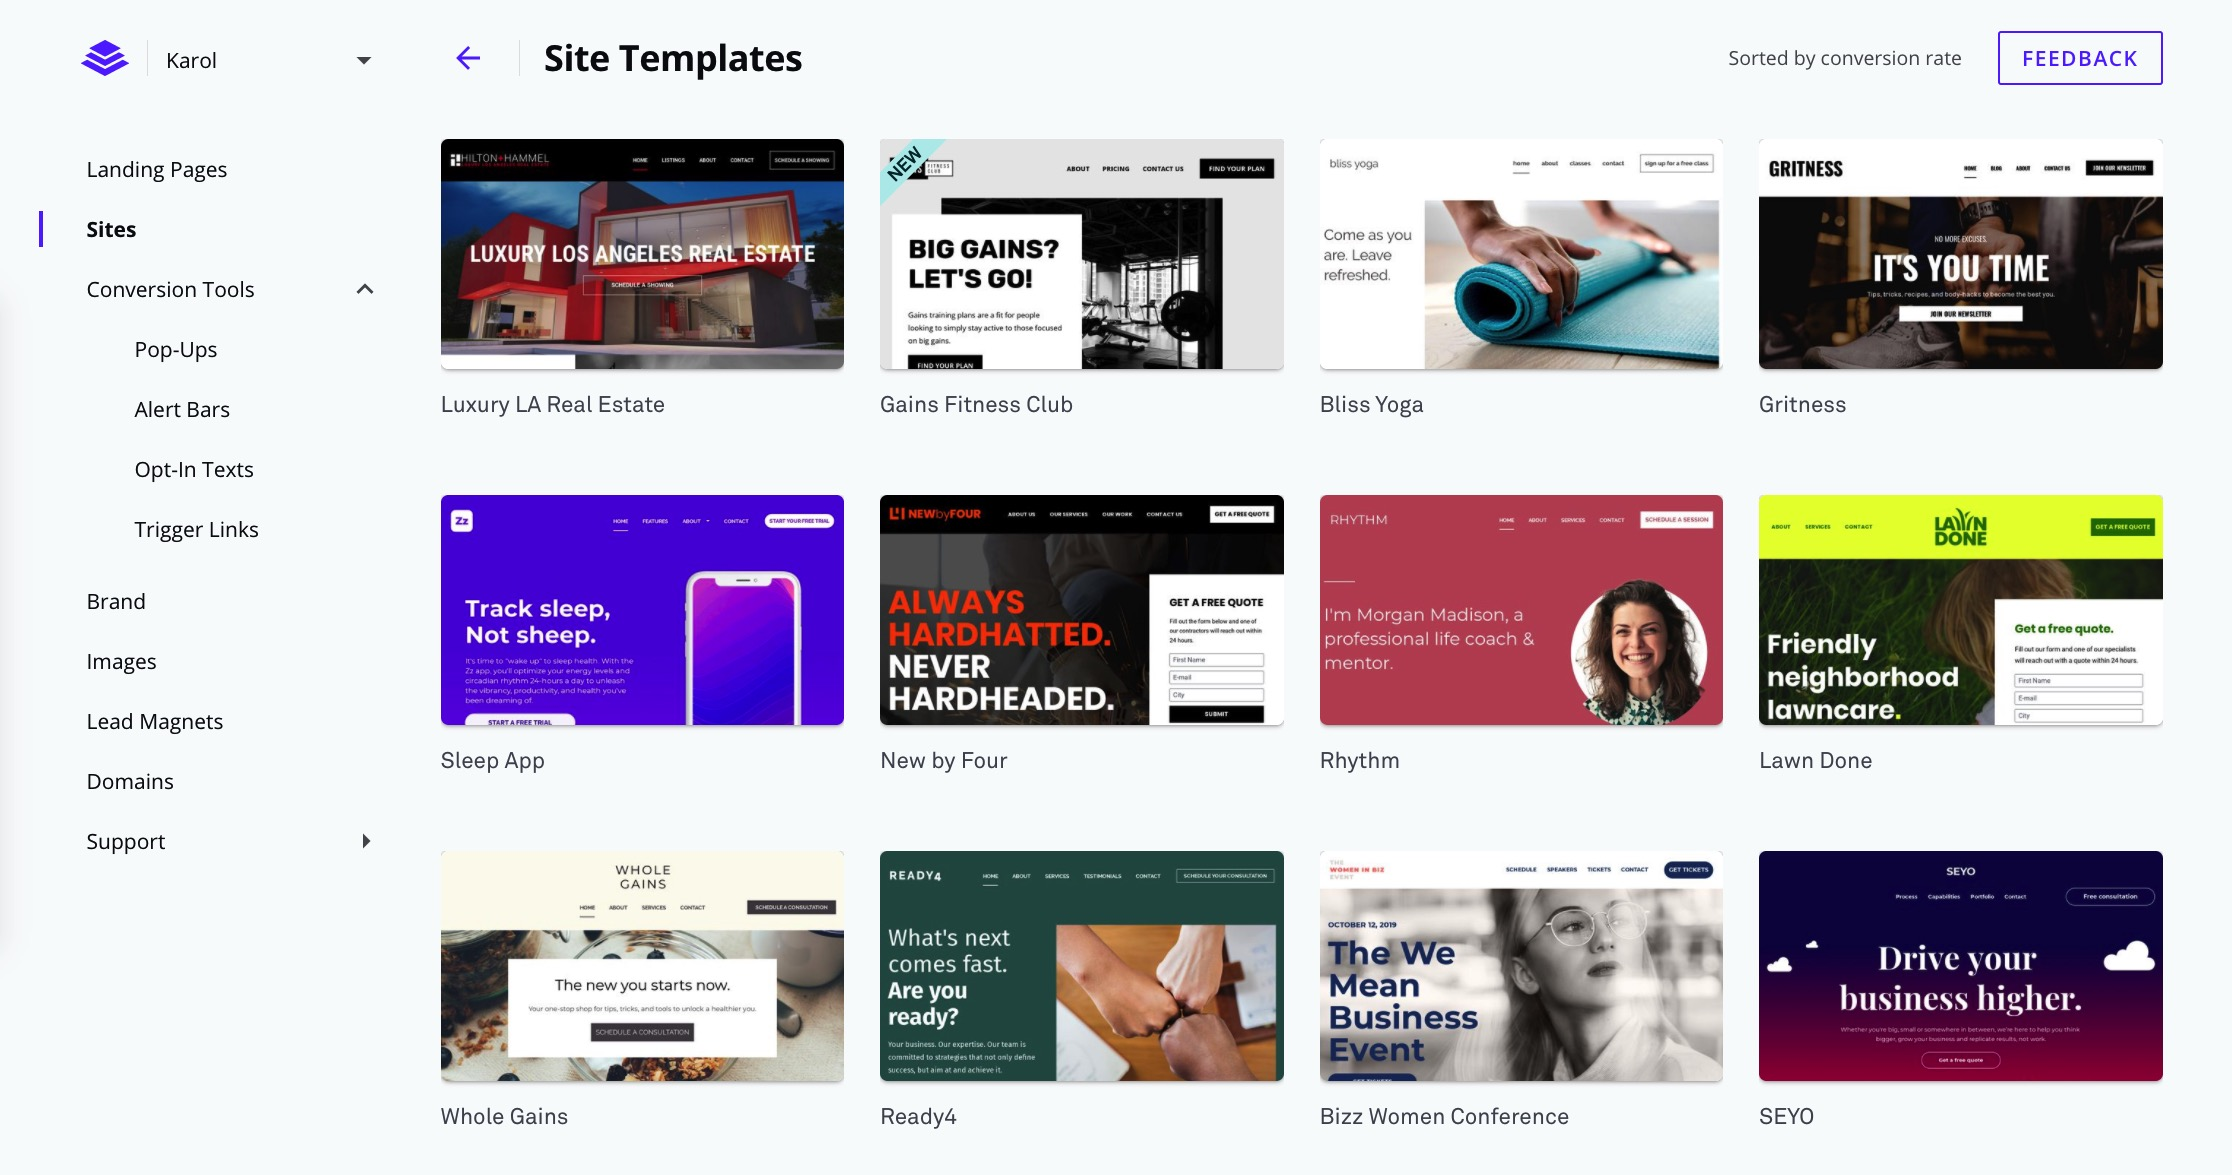 LeadPages site templates